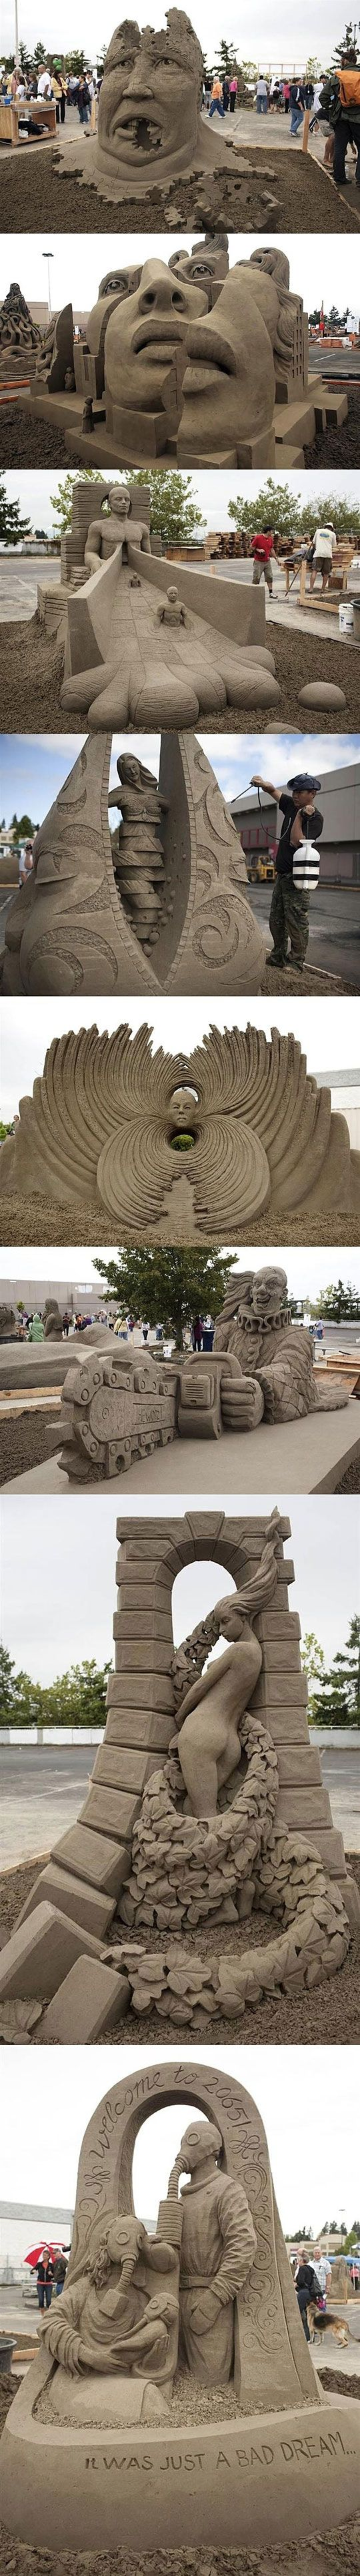 Pretty much similar to the sand castles I build at the beach :)